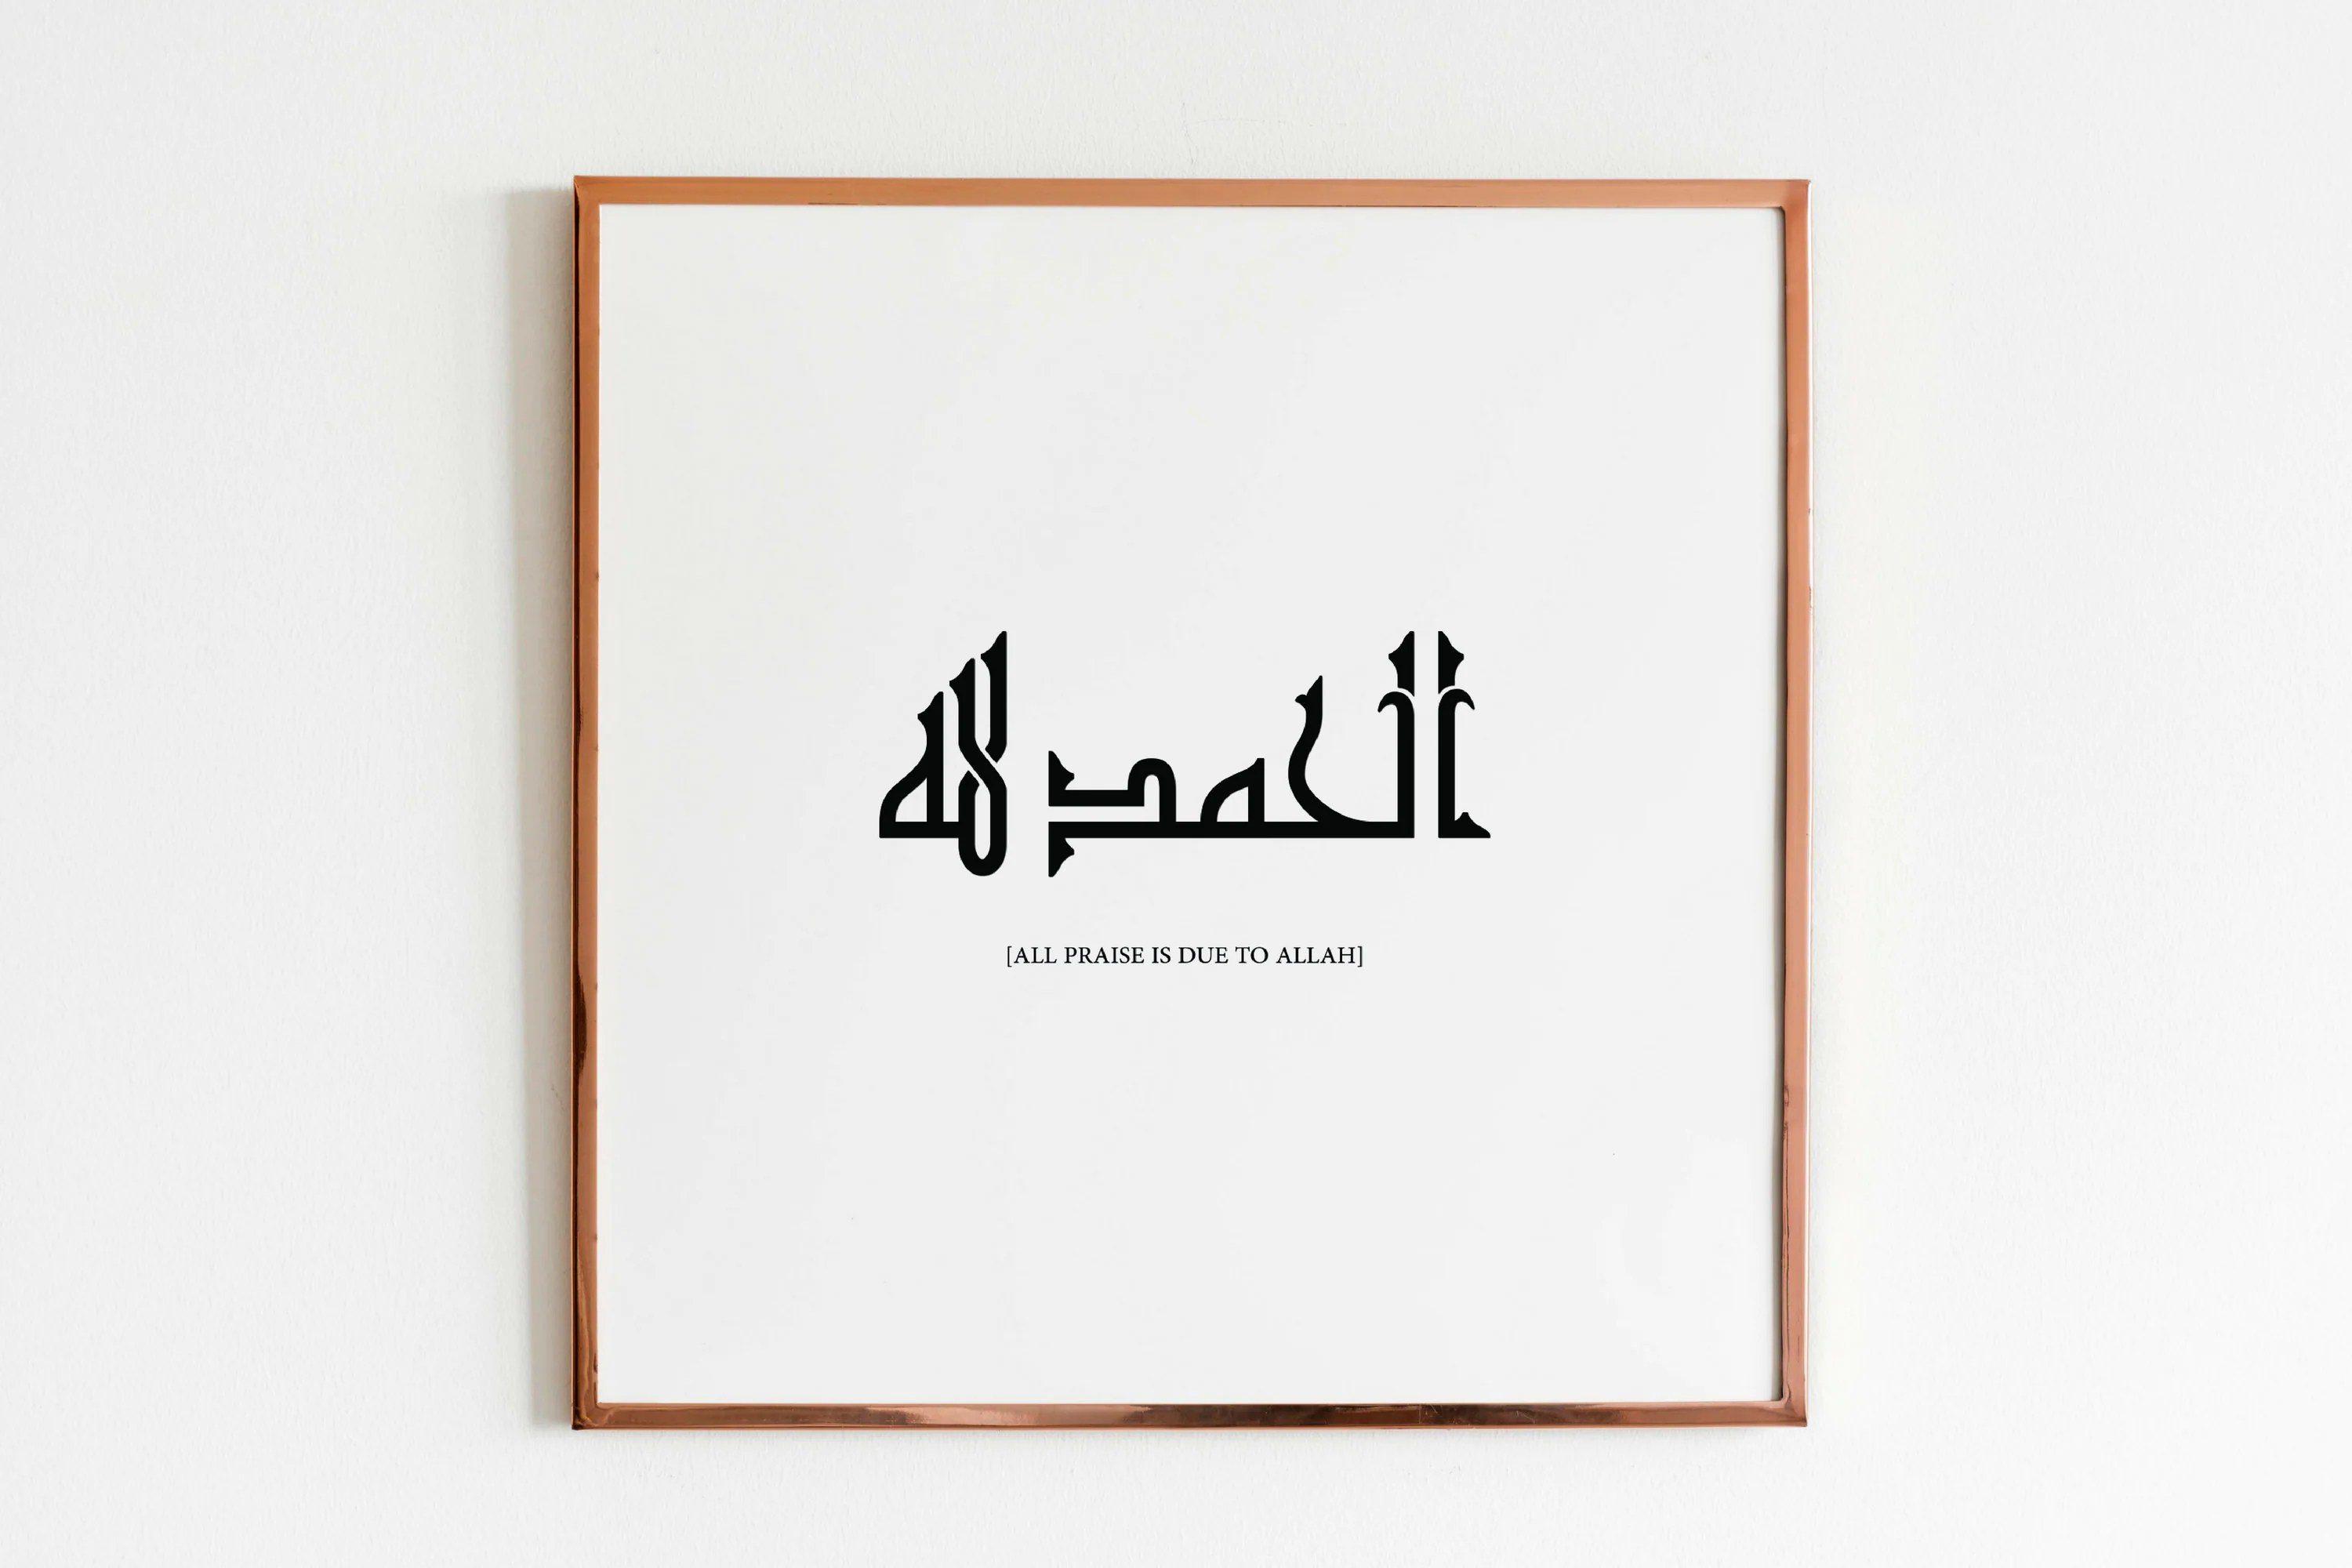 Islam Wanddeko Alhamdulillah Wall Art Poster Islamic Calligraphy Printable Art Arabic Calligraphy Quotes Muslim Gift Ideas Islam Home Decor Printable